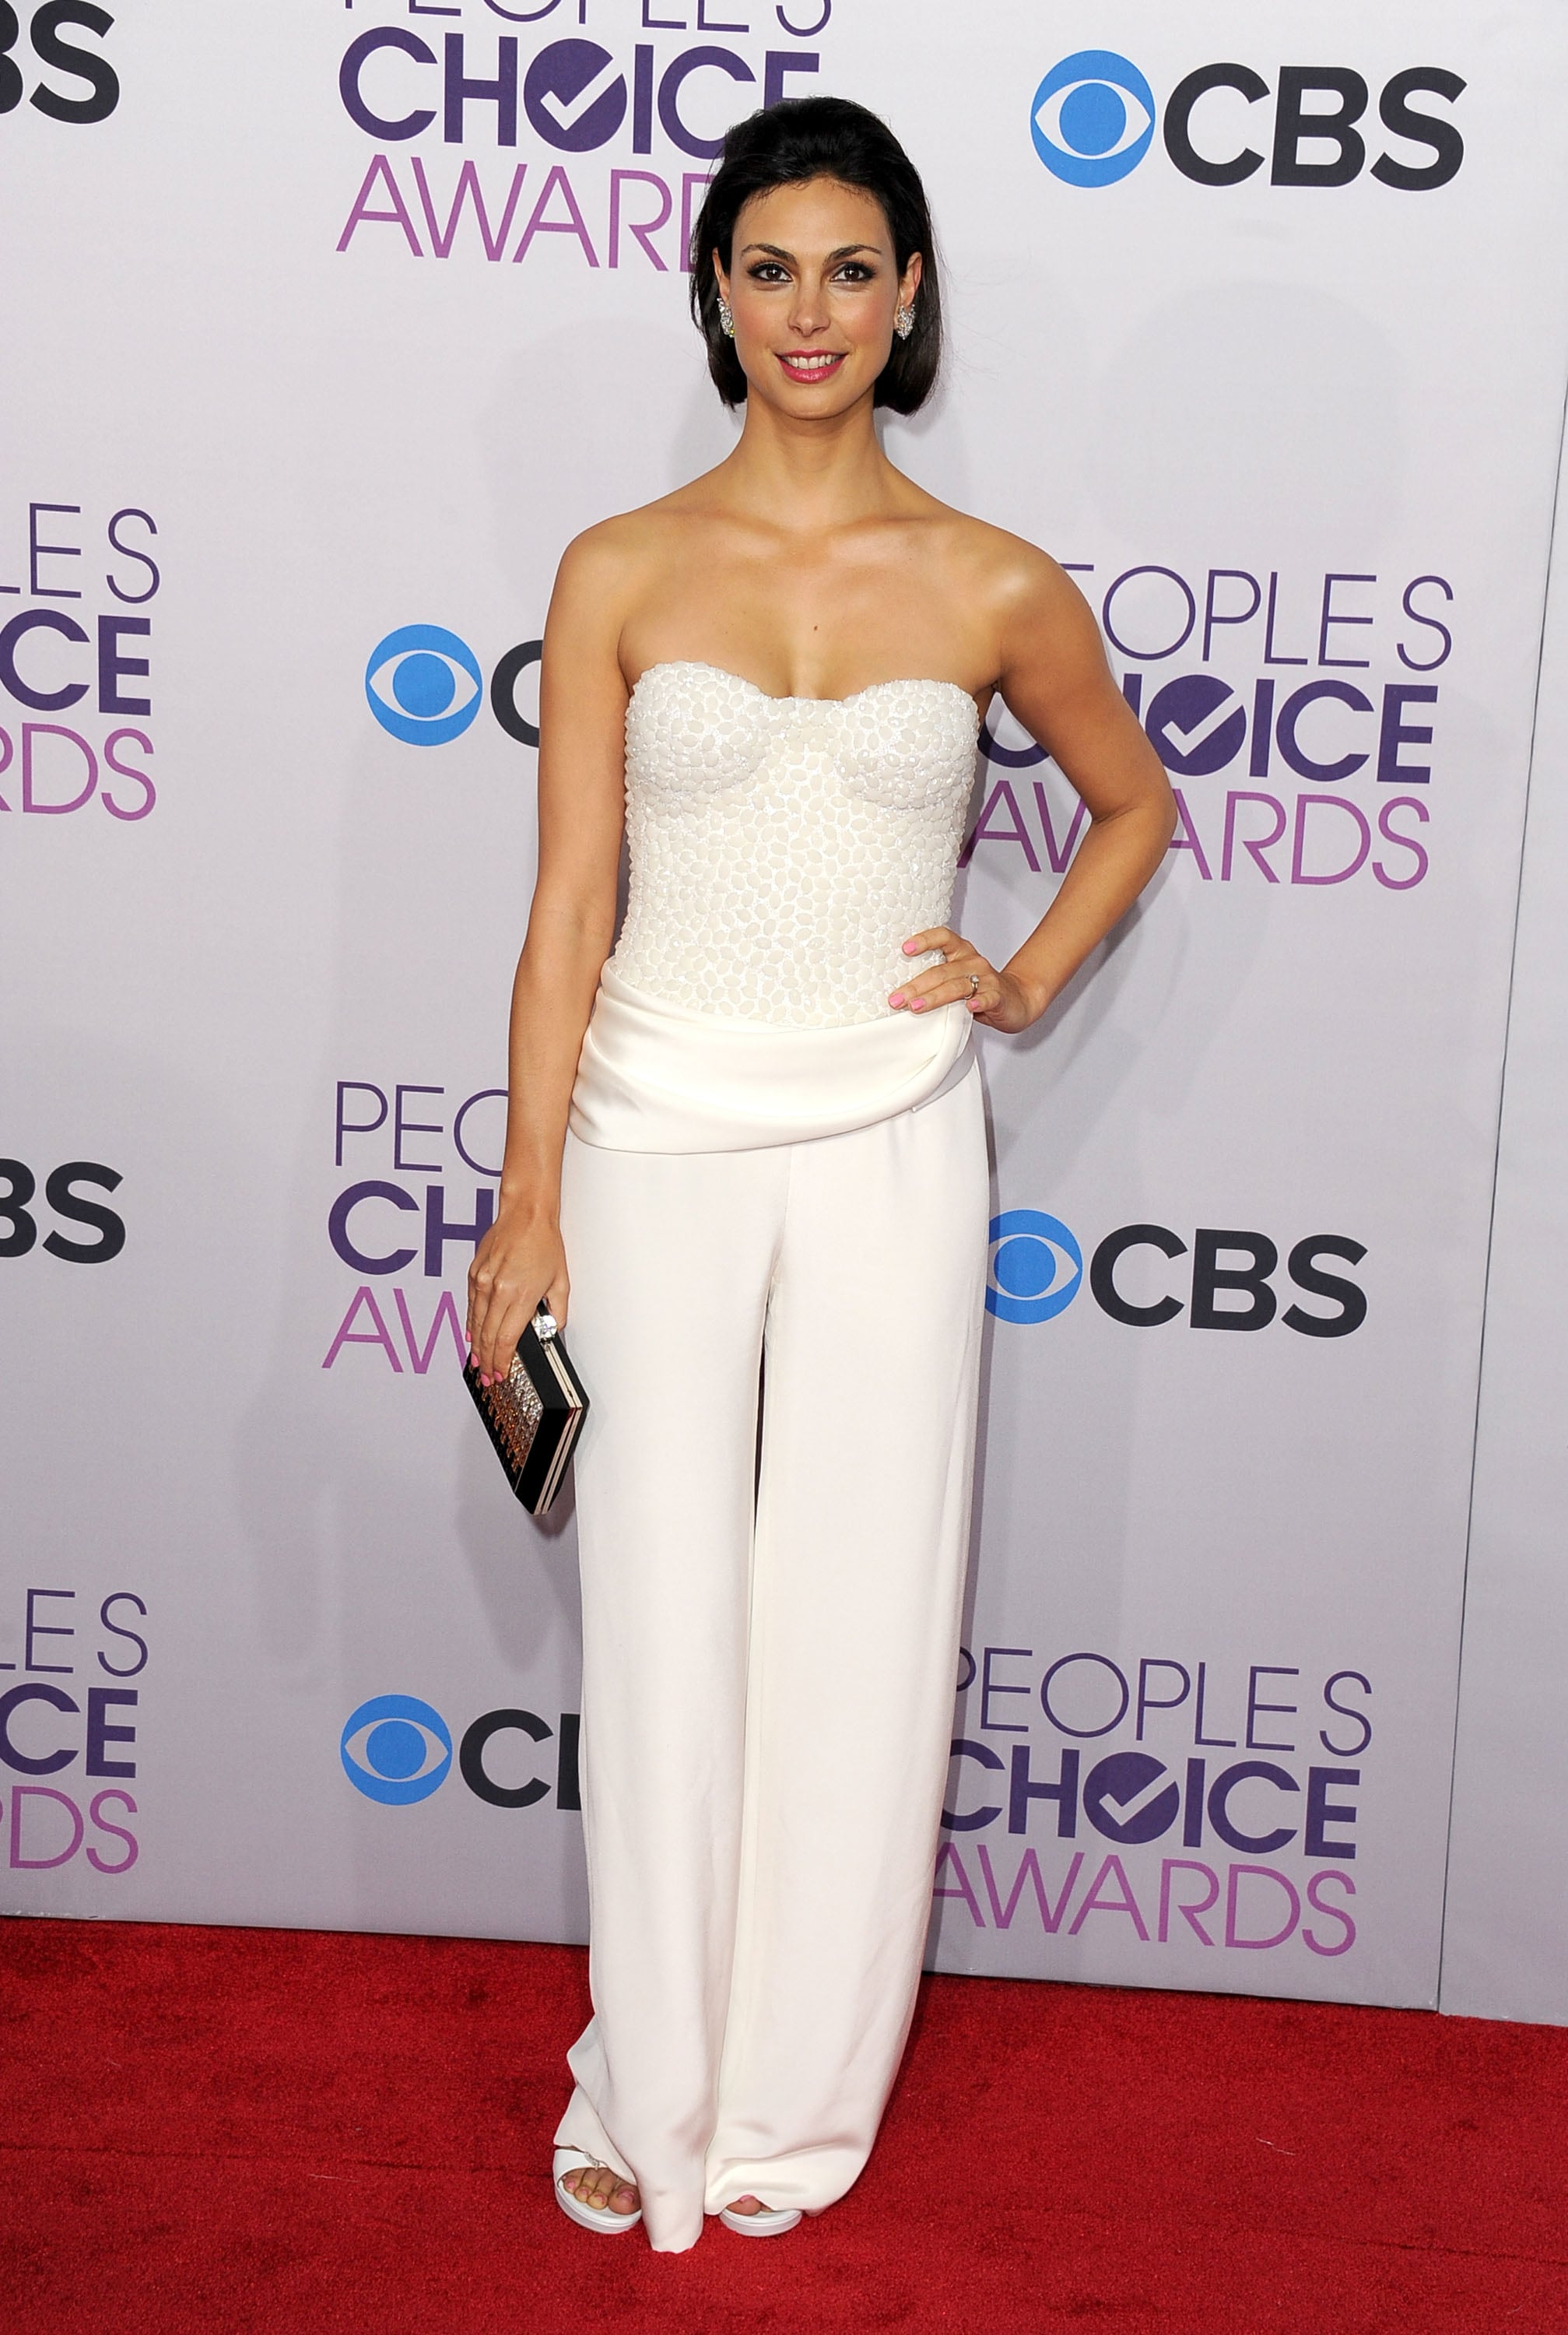 Morena Baccarin wore a white pantsuit.